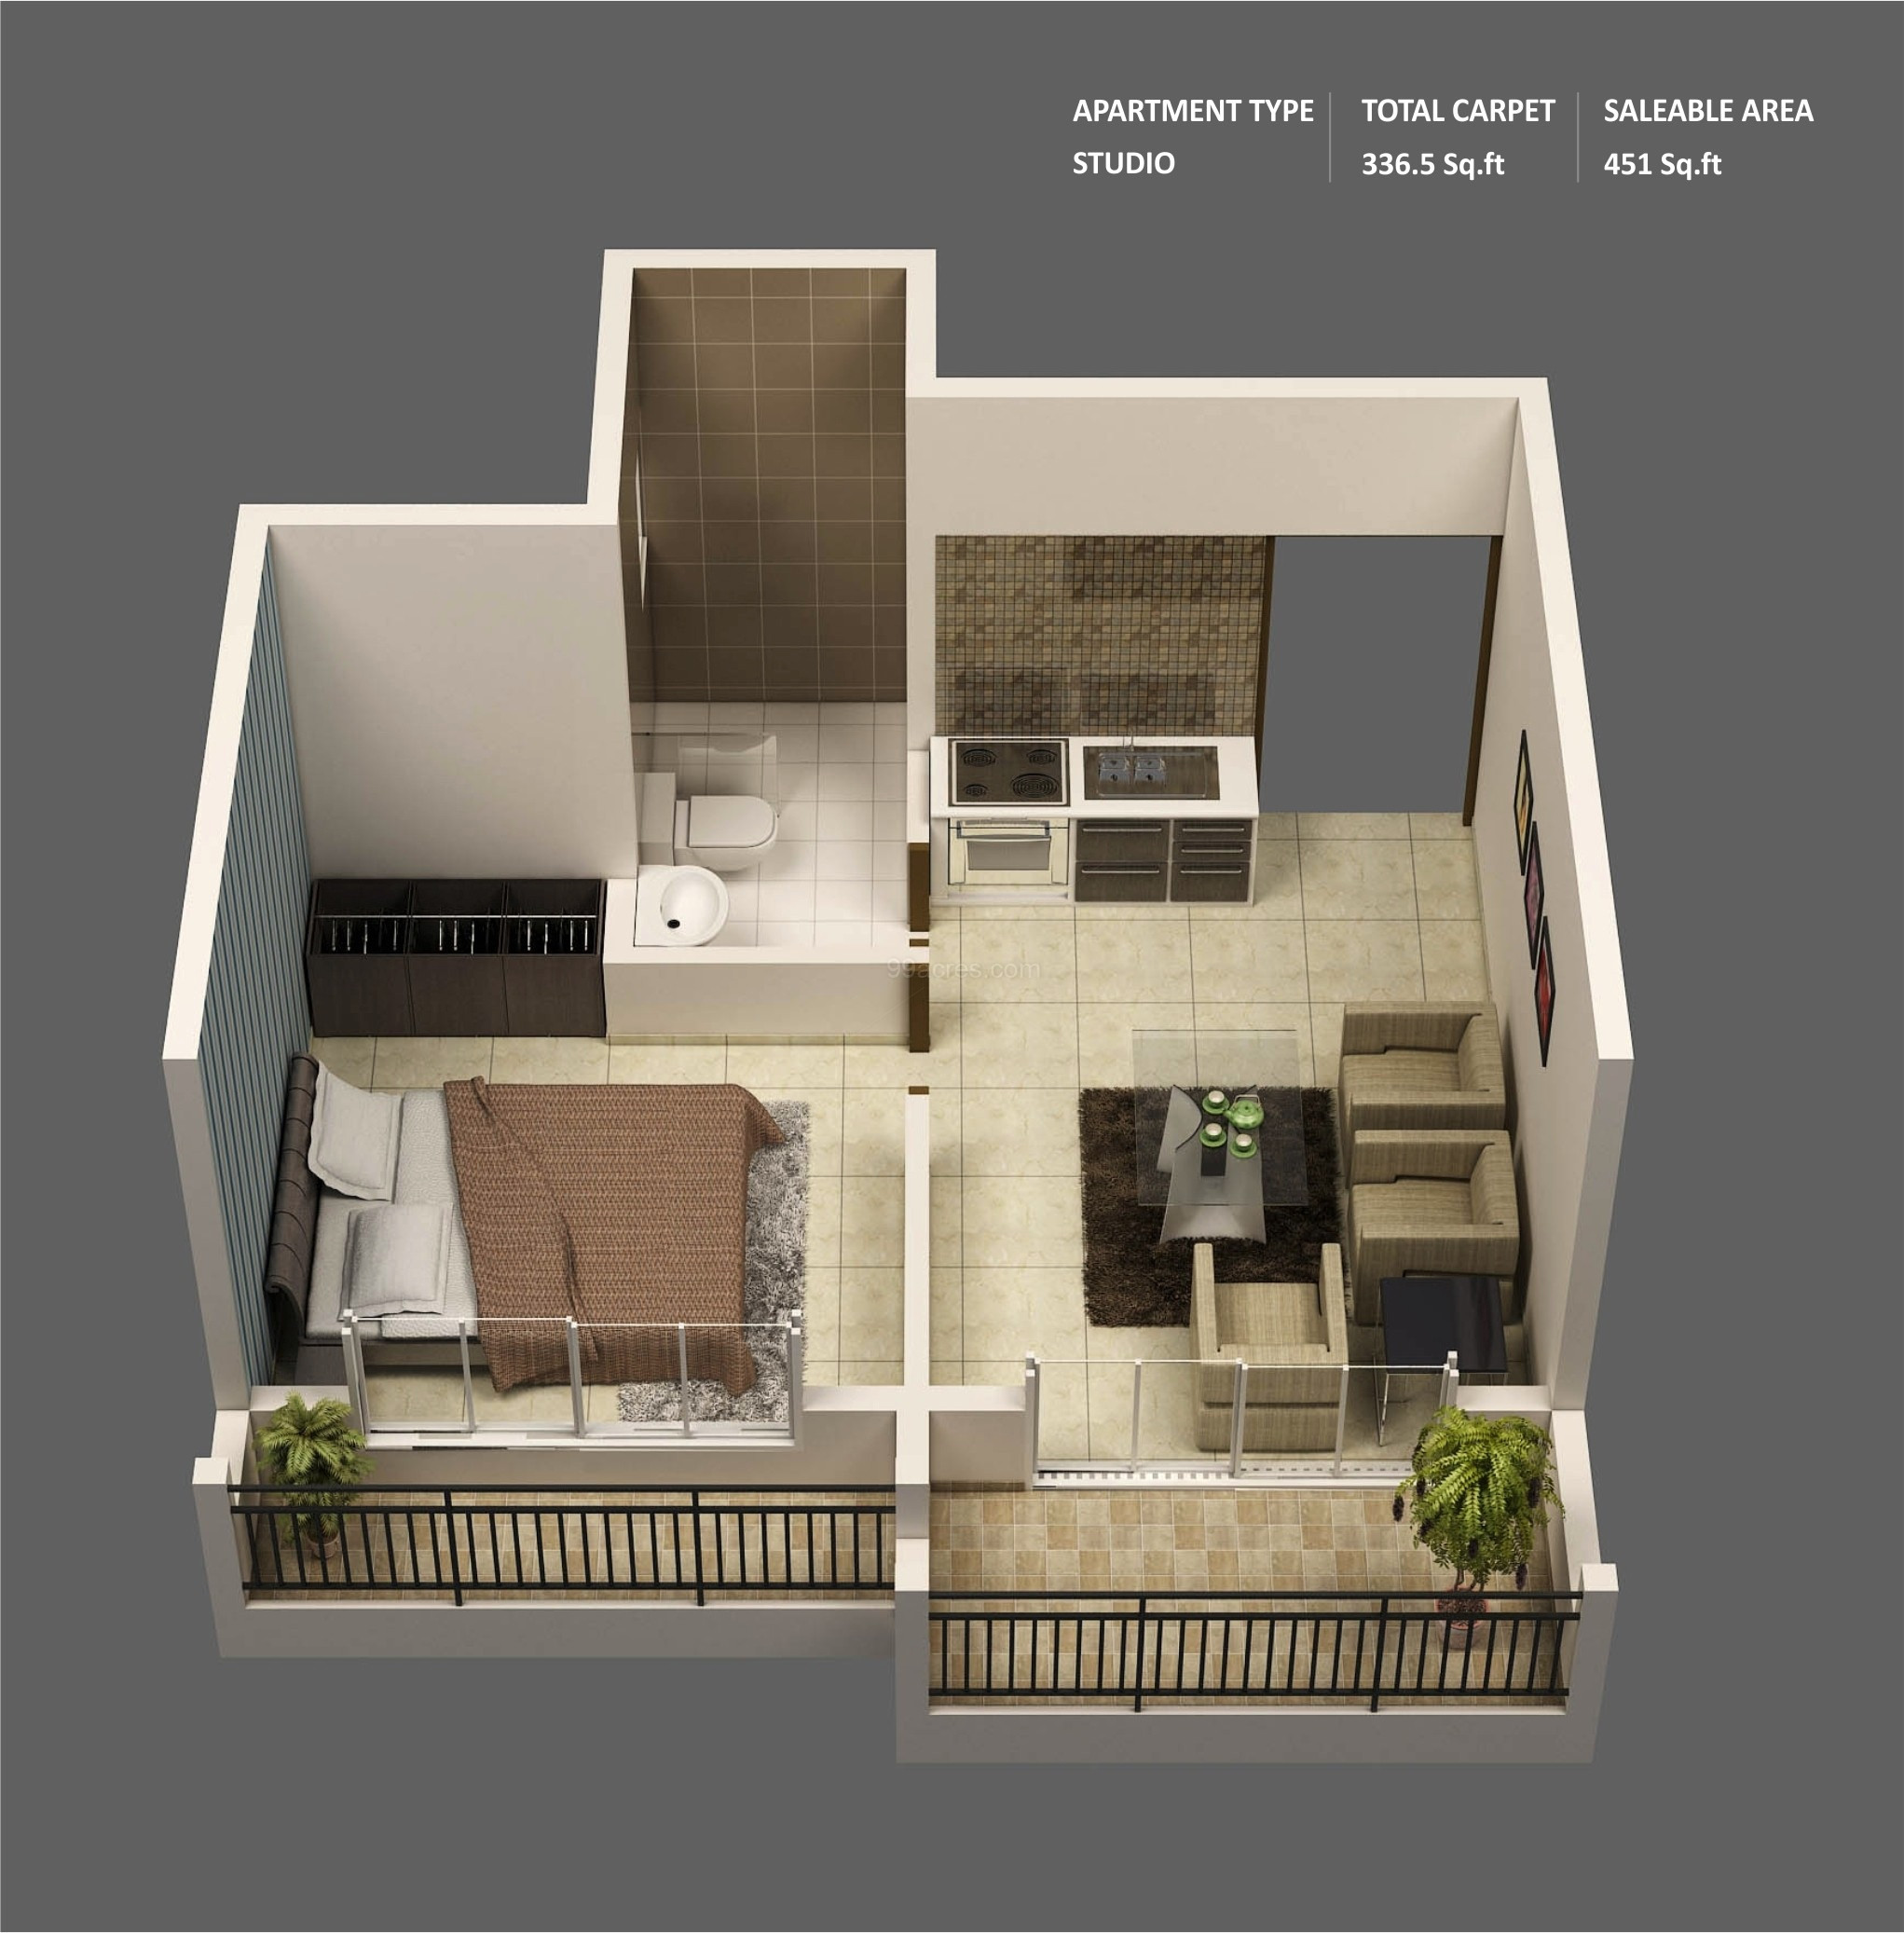 Best ideas about One Bedroom Apartment . Save or Pin 1 Bedroom Apartment House Plans Now.